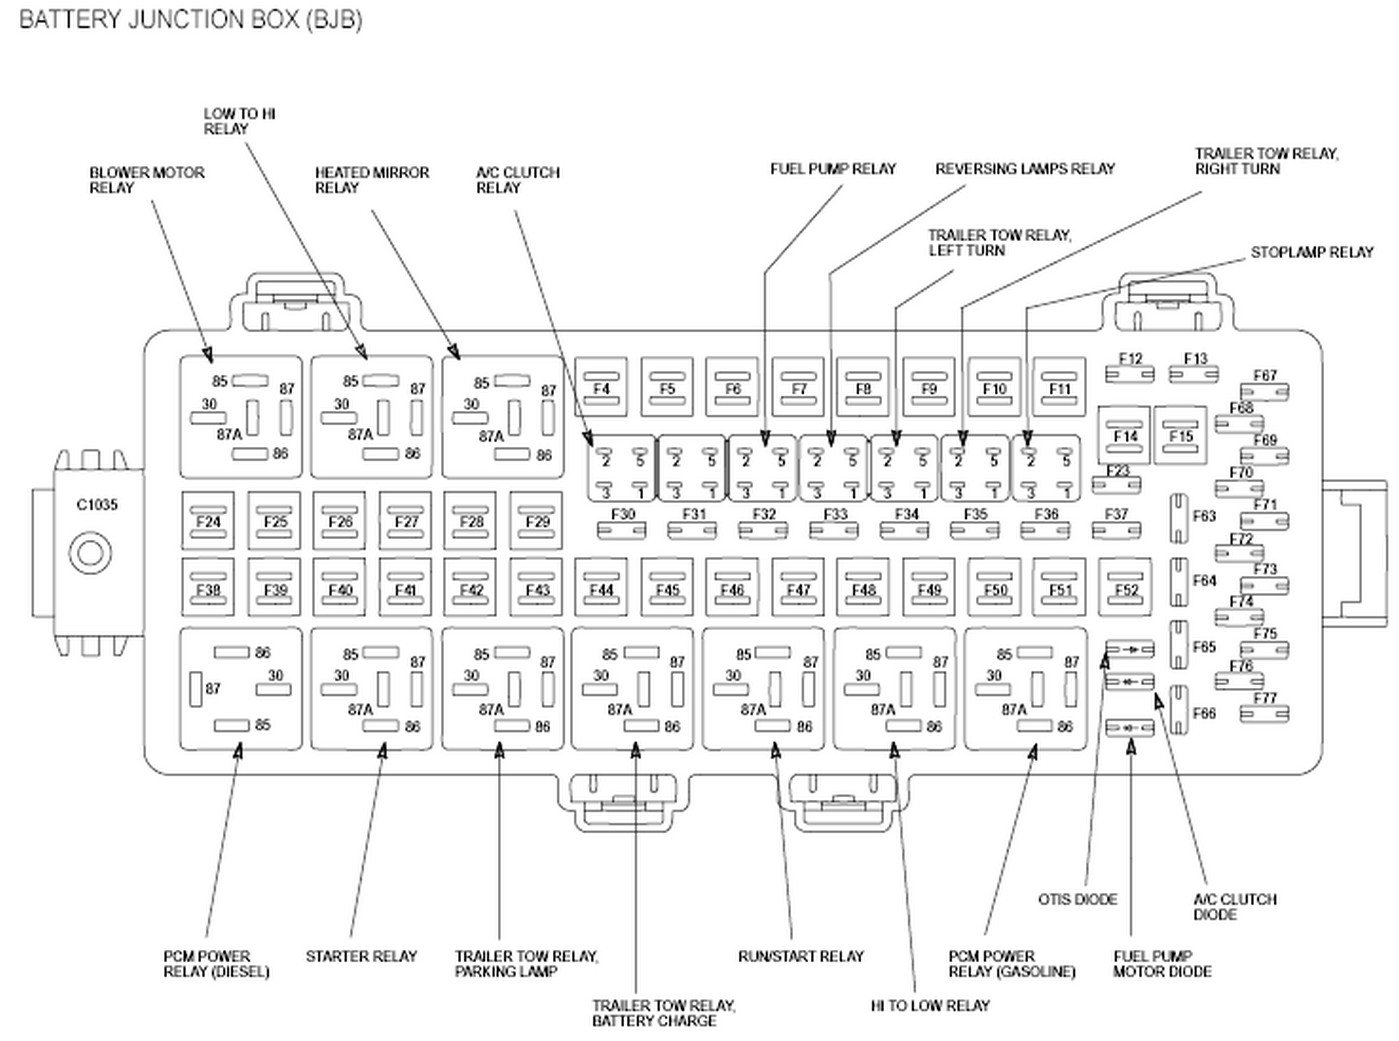 08 Ford F250 Fuse Diagram Archive Of Automotive Wiring 2008 F 250 Radio 2011 Box Just Schematic Rh Lailamaed Co Uk Panel